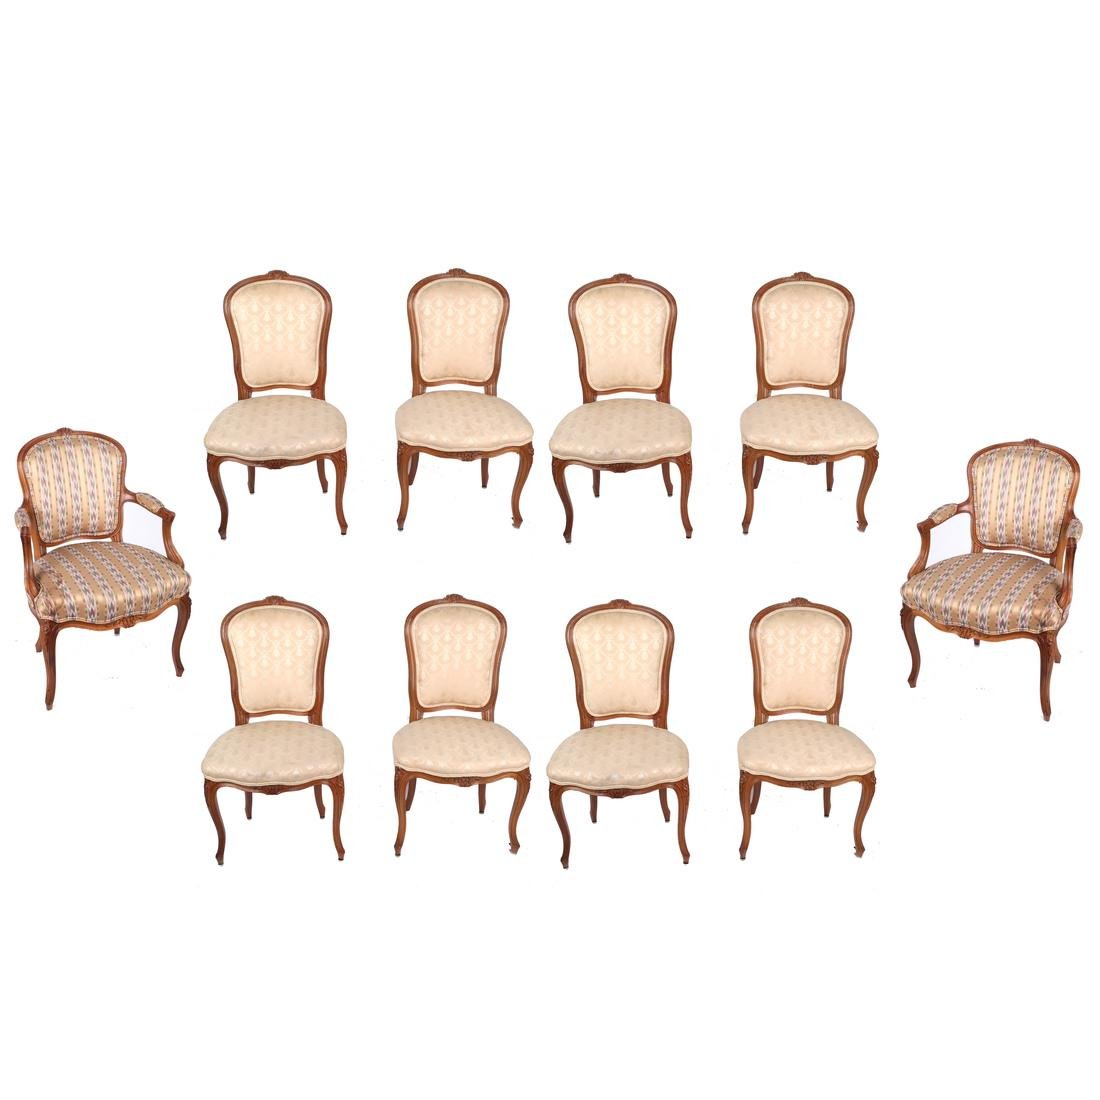 Set of 10 Provincial Dining Chairs